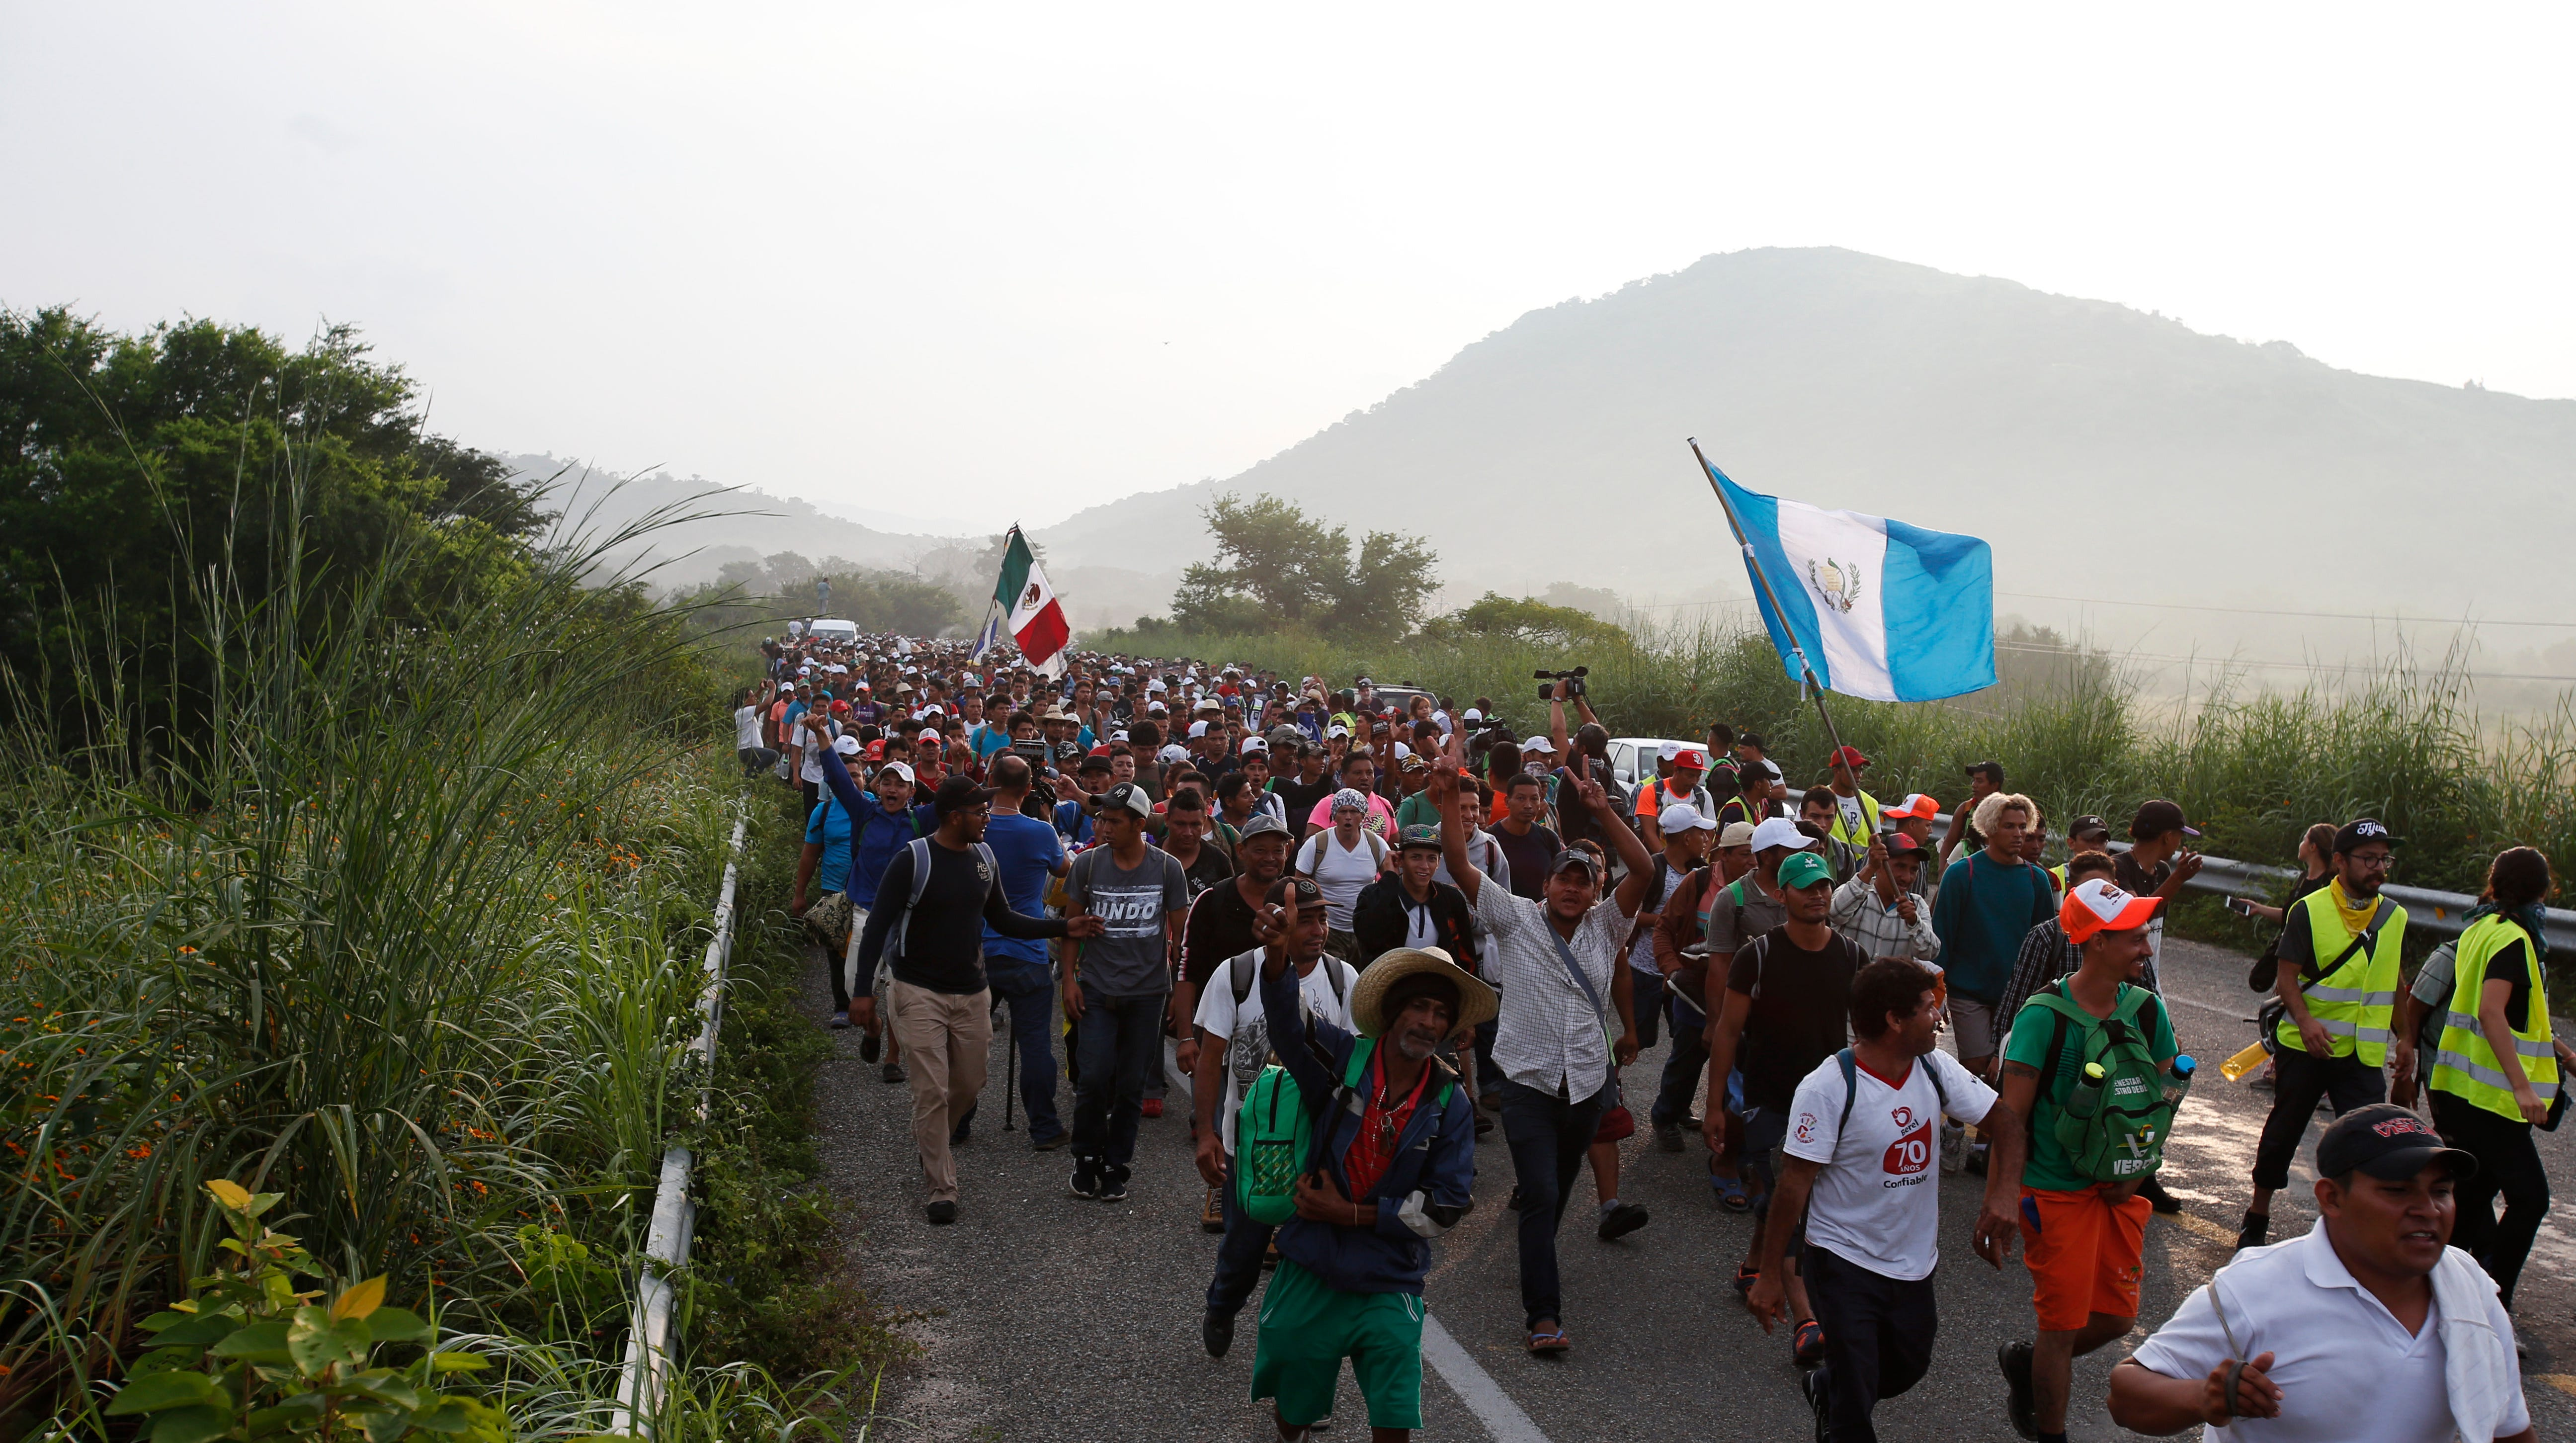 Migrants walk along the road after Mexico's federal police briefly blocked the highway in an attempt to stop a thousands-strong caravan of Central American migrants from advancing, outside the town of Arriaga, Chiapas State, Mexico, on Saturday, Oct. 27, 2018. Hundreds of Mexican federal officers carrying plastic shields had blocked the caravan from advancing toward the United States, after thousands of the migrants turned down the chance to apply for refugee status and obtain a Mexican offer of benefits.